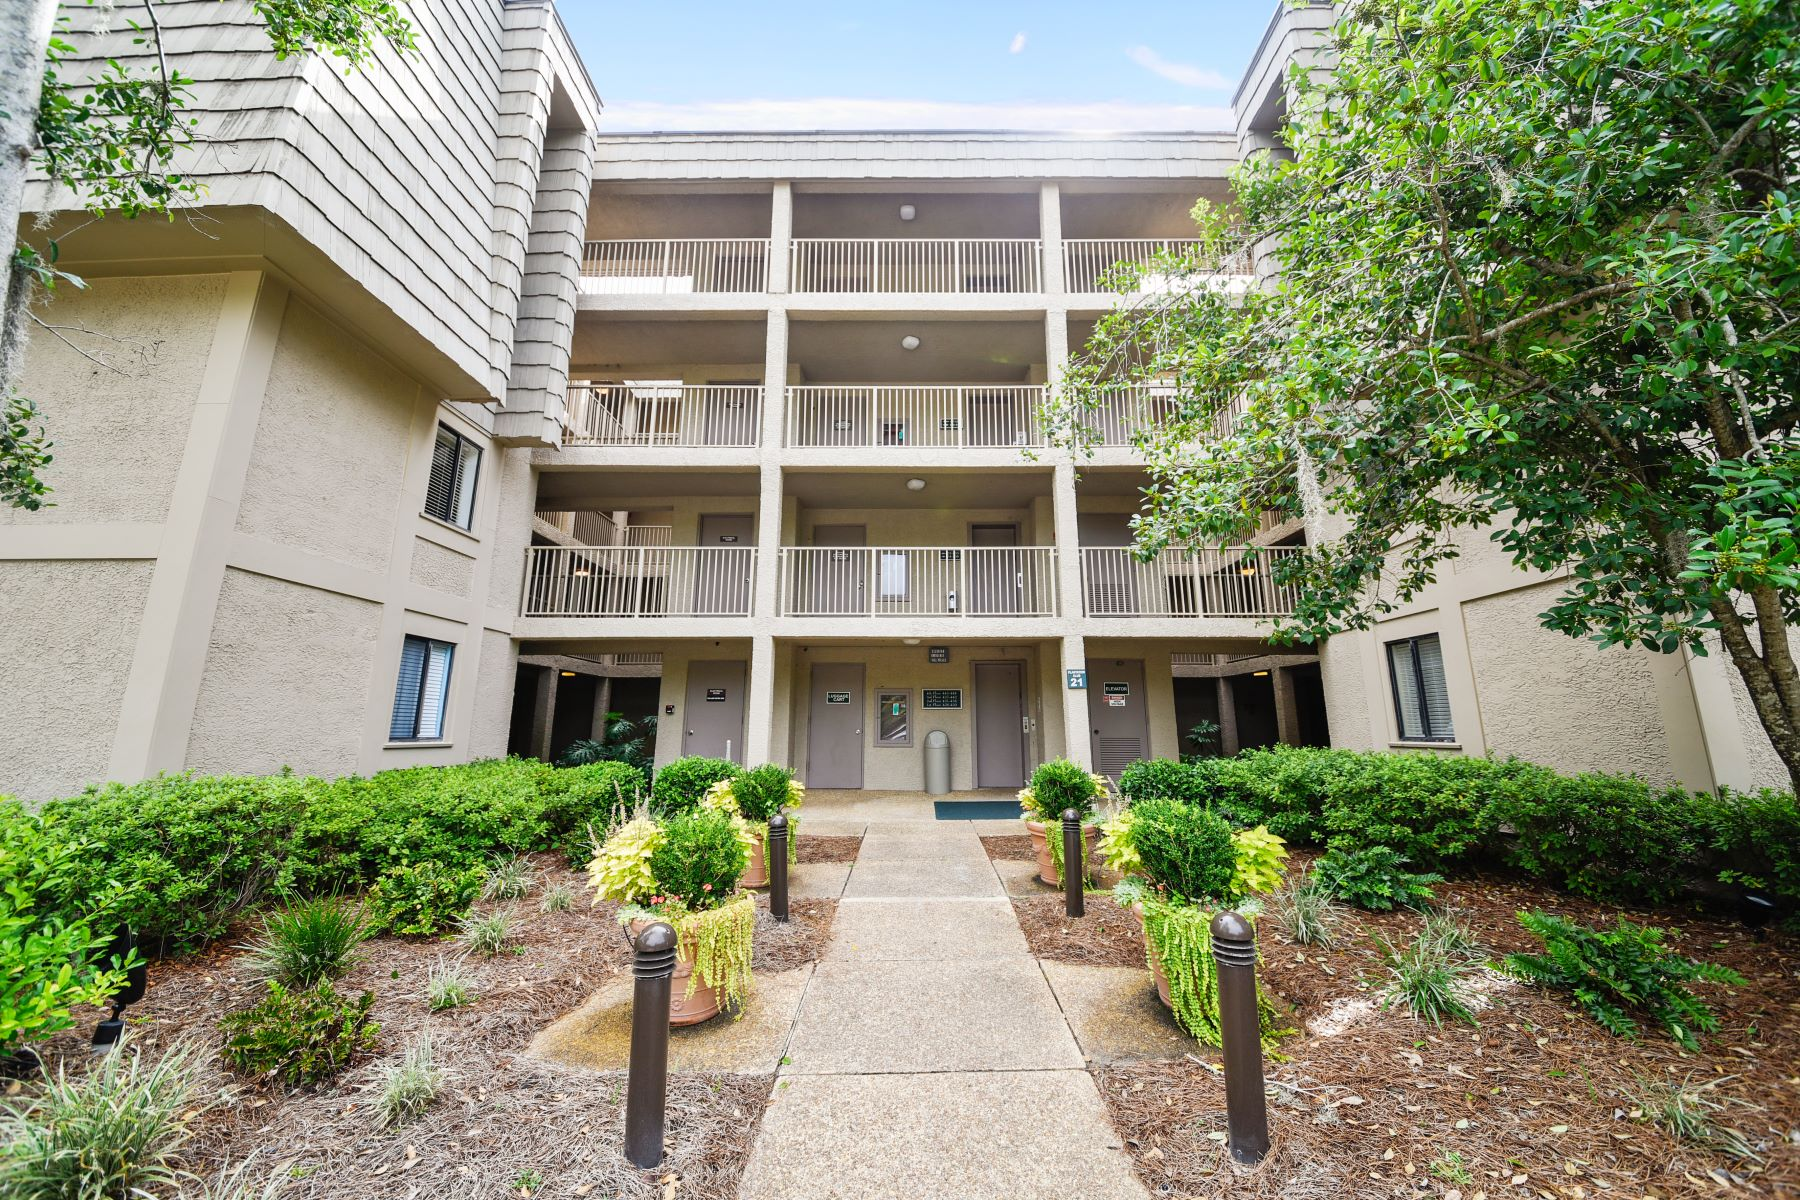 Piso por un Venta en 10 Lighthouse Road Unit 436 10 Lighthouse Road Unit 436 Hilton Head Island, Carolina Del Sur 29910 Estados UnidosEn/Alrededor: Hilton Head